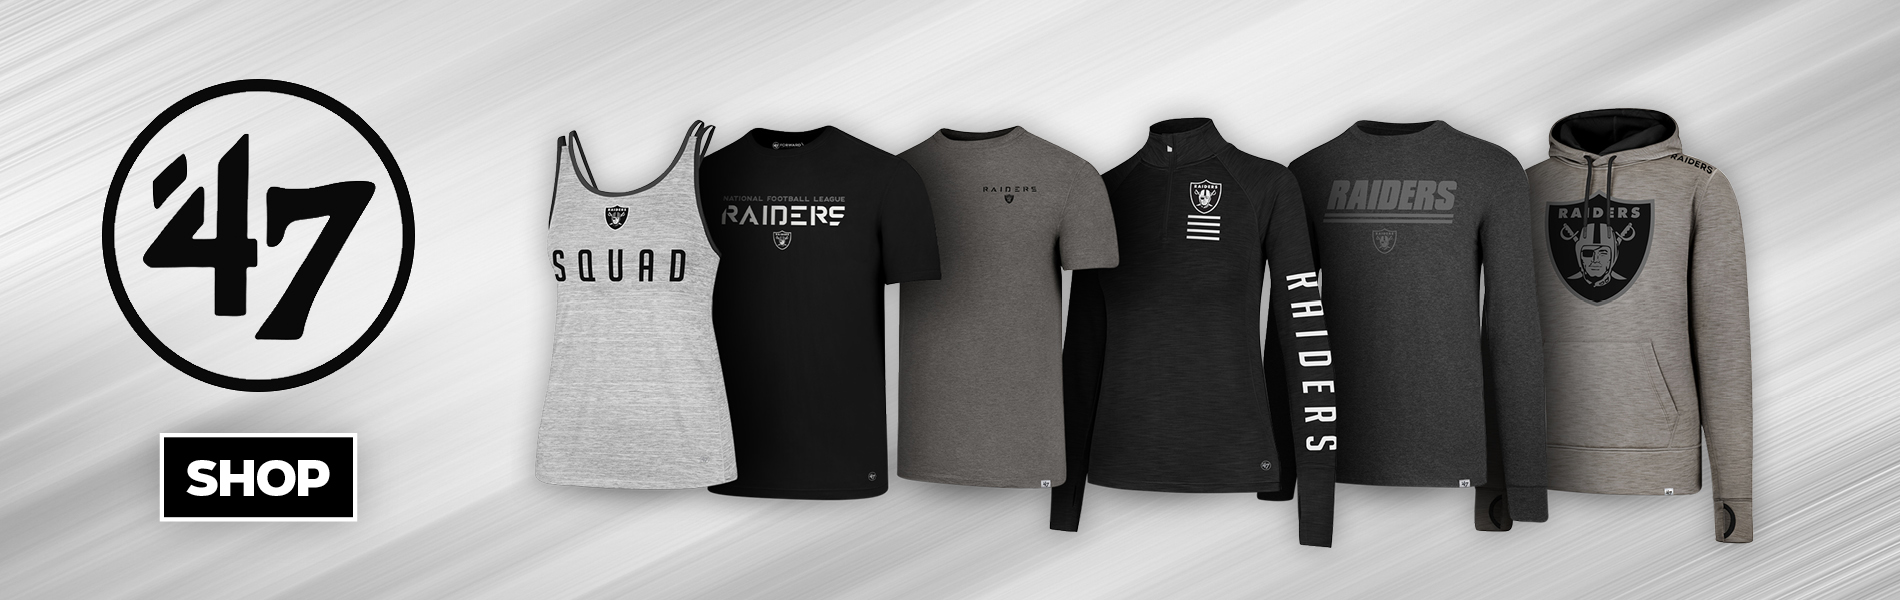 The Raider Image The Official Store For Oakland Raiders Merchandise - Free plumbing invoice template cricket store online